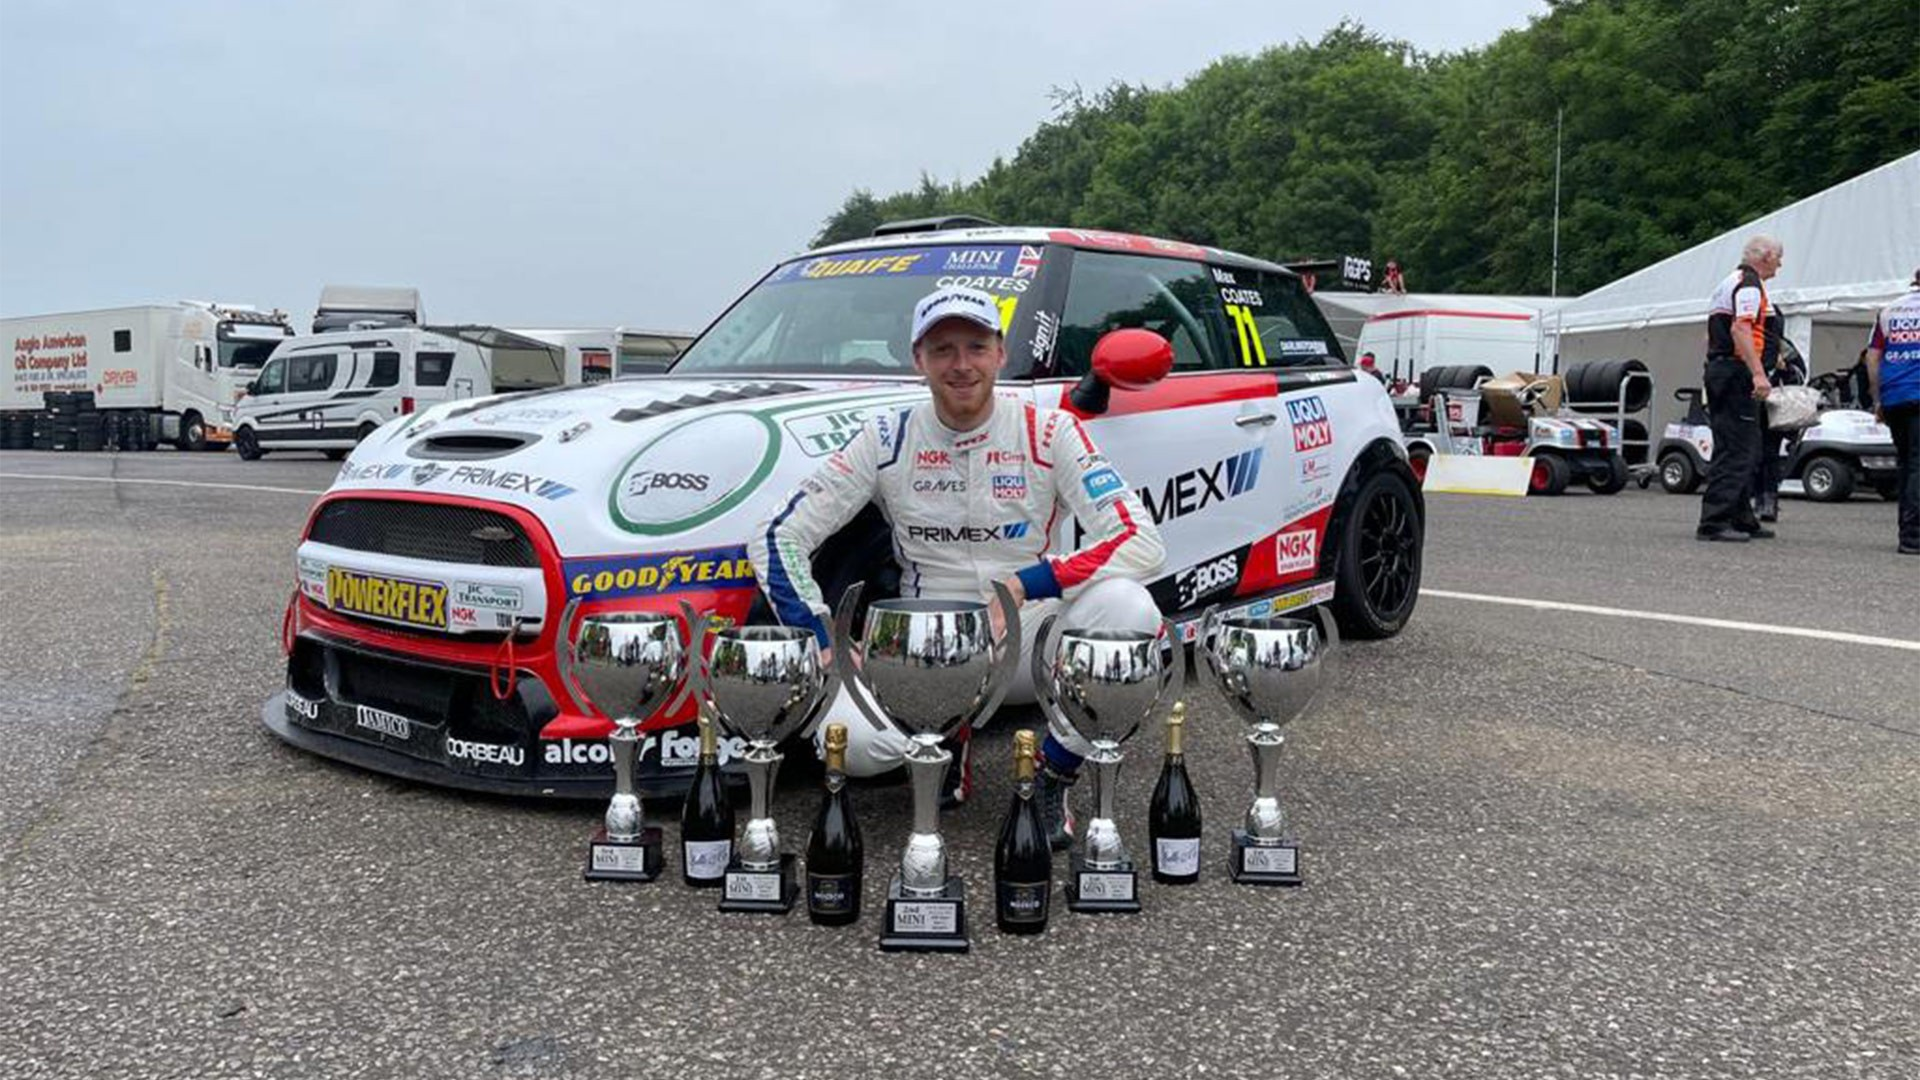 Graves Motorsport announce multi-year contract extension with Coates and BTCC plans